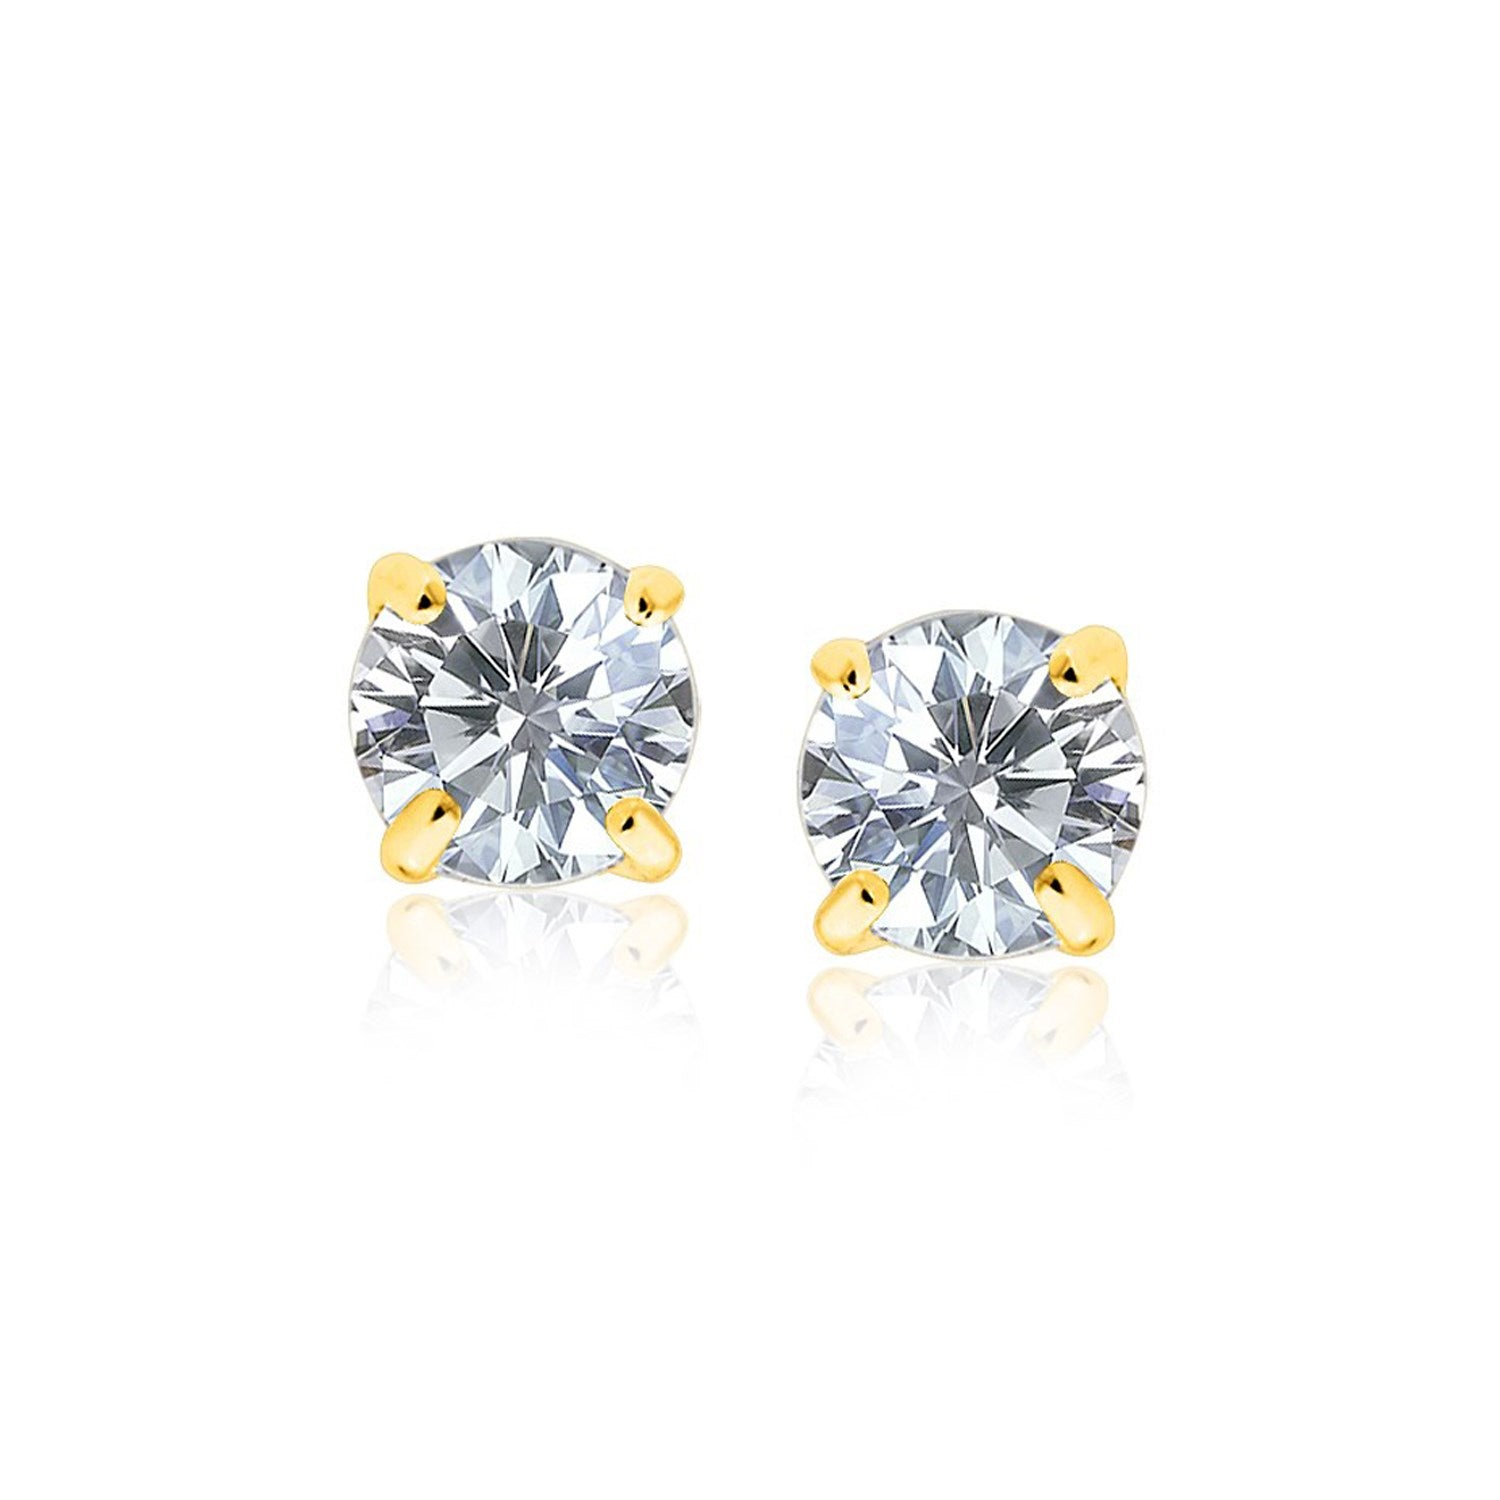 Original New York Style  14K Yellow Gold 8.0mm Round CZ Stud Earrings